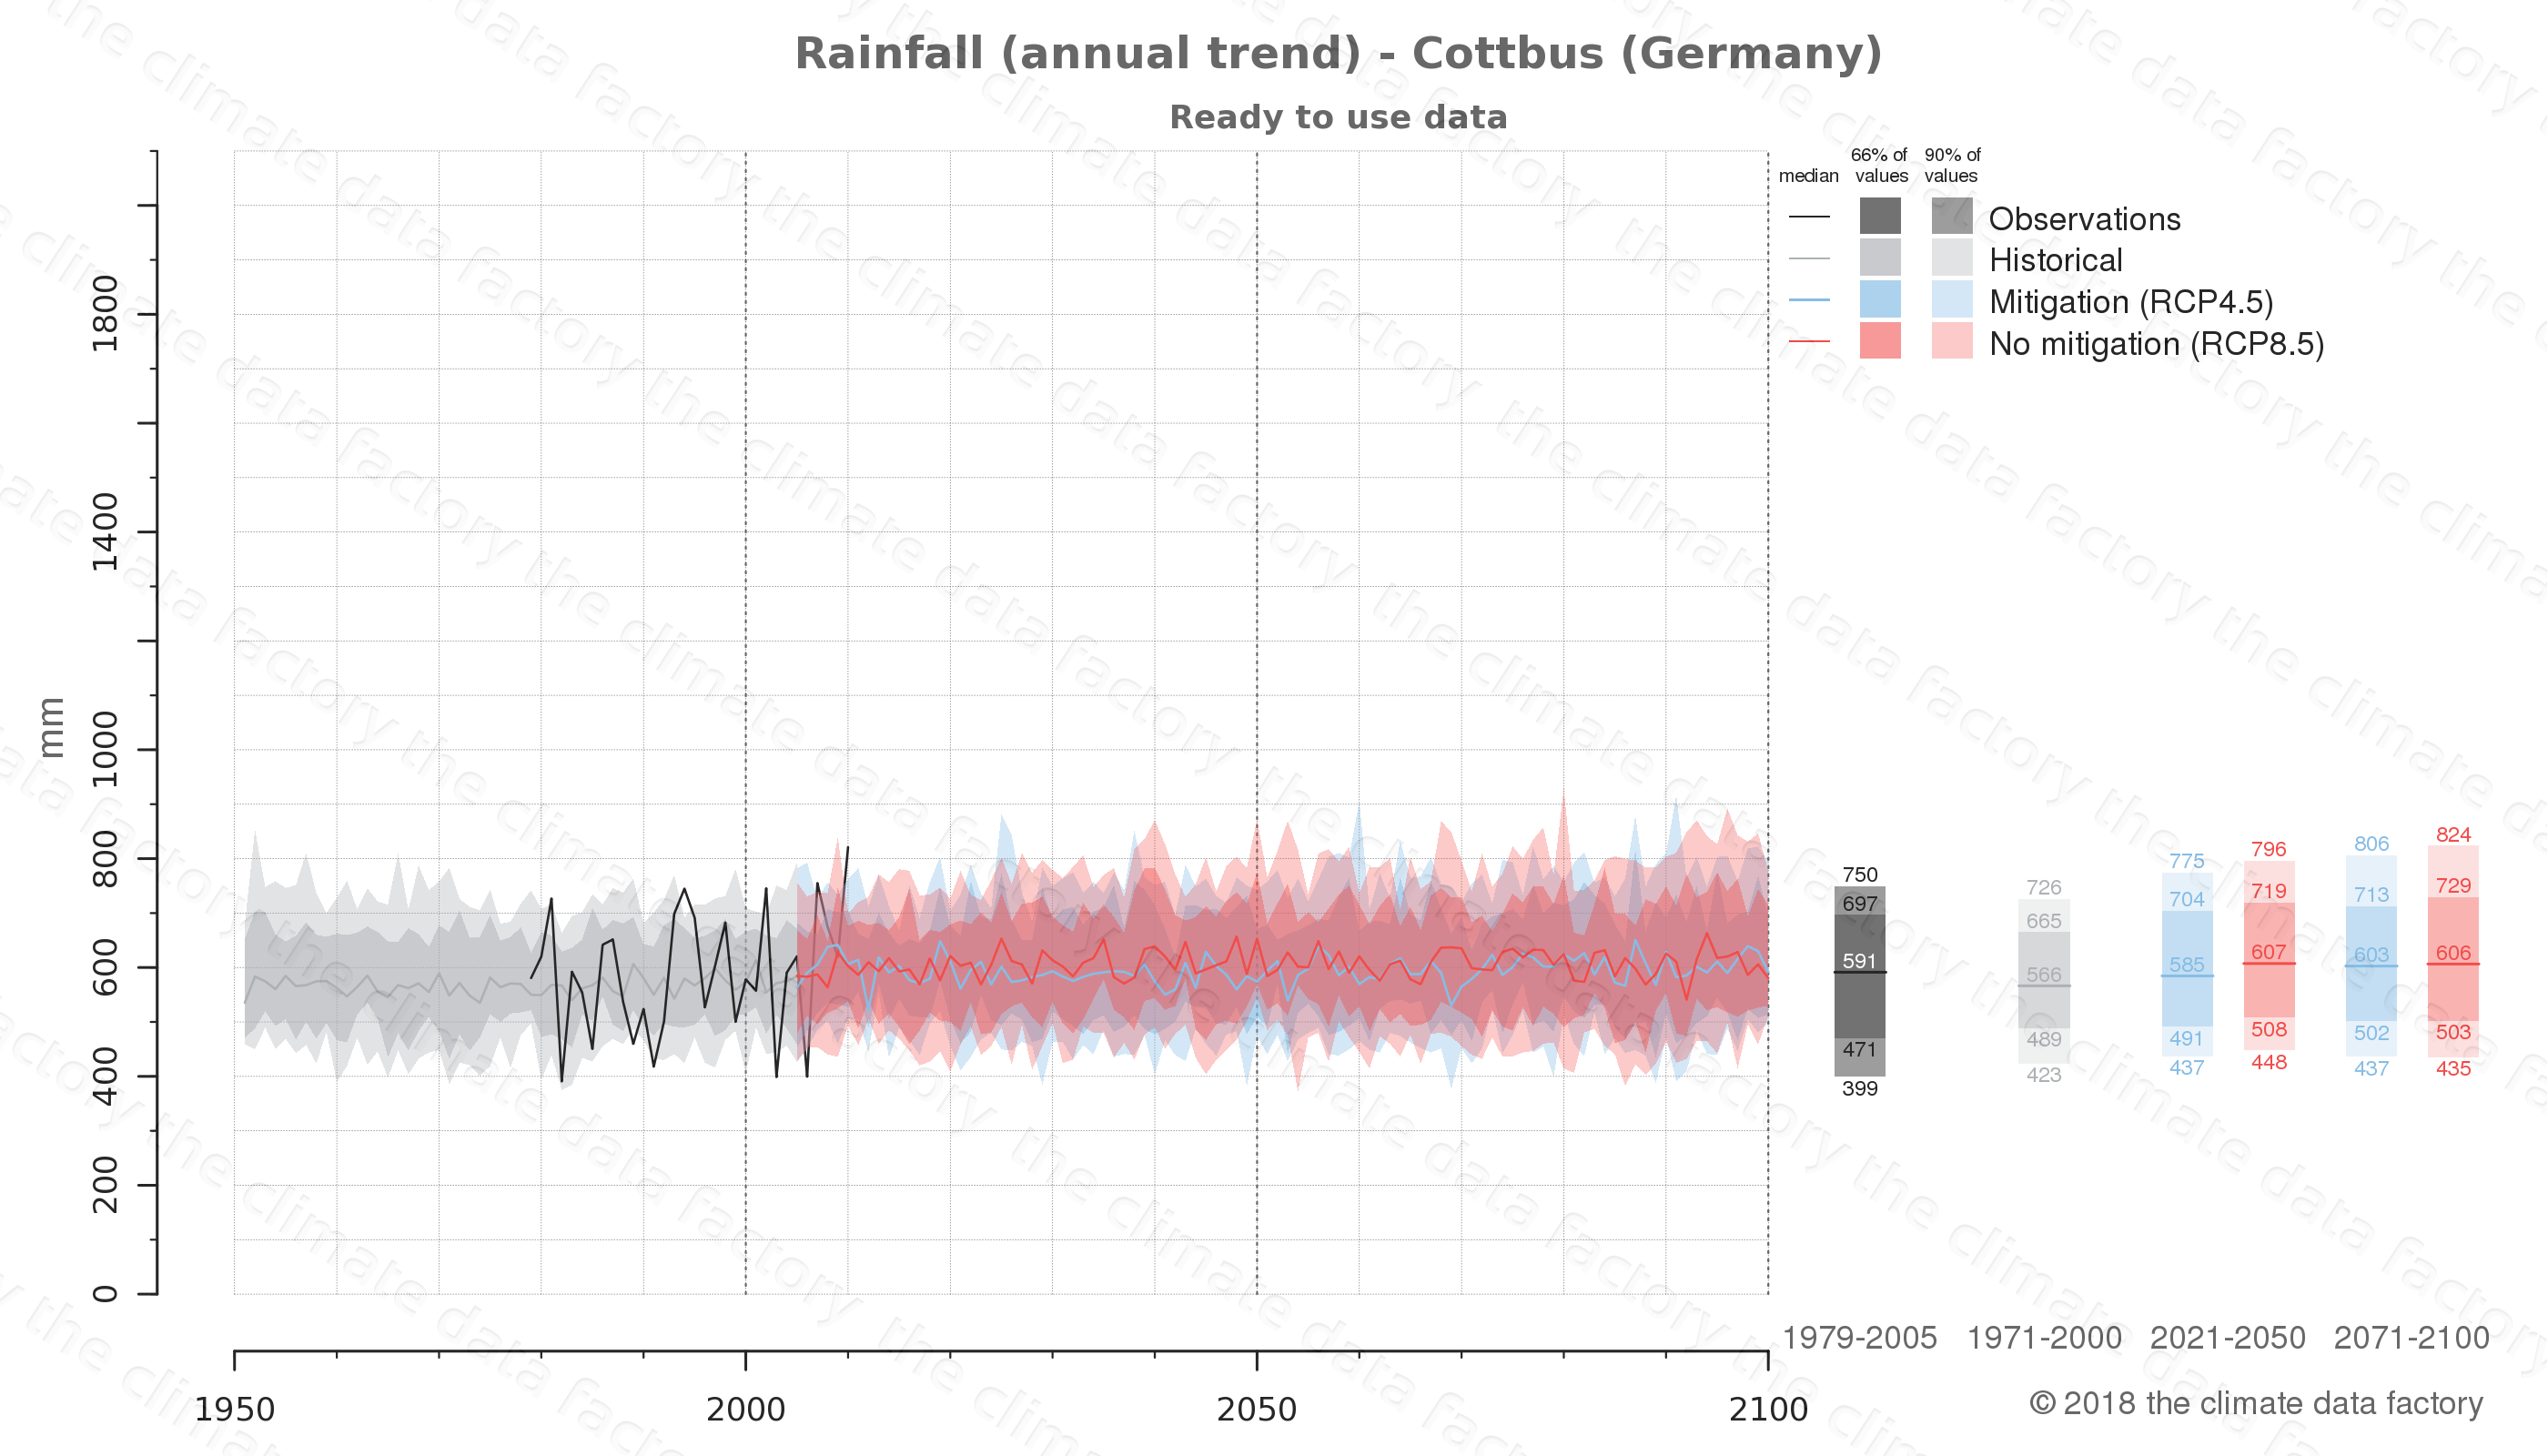 climate change data policy adaptation climate graph city data rainfall cottbus germany